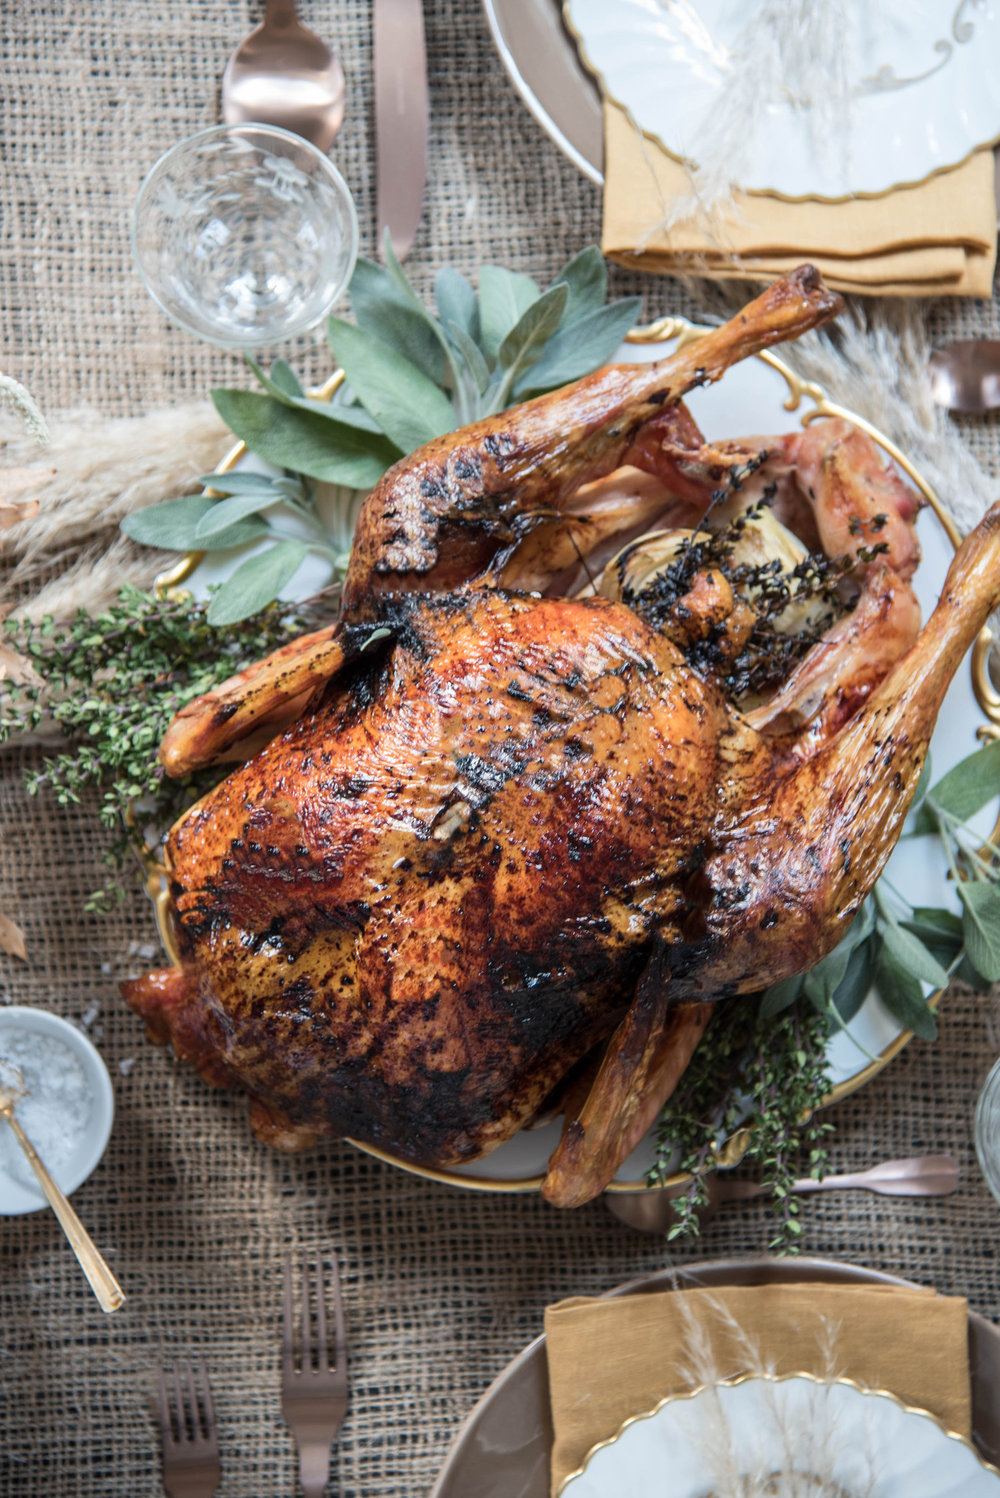 ROSE & IVY Journal Our Favorite Thanksgiving Dishes Cider Glazed Turkey